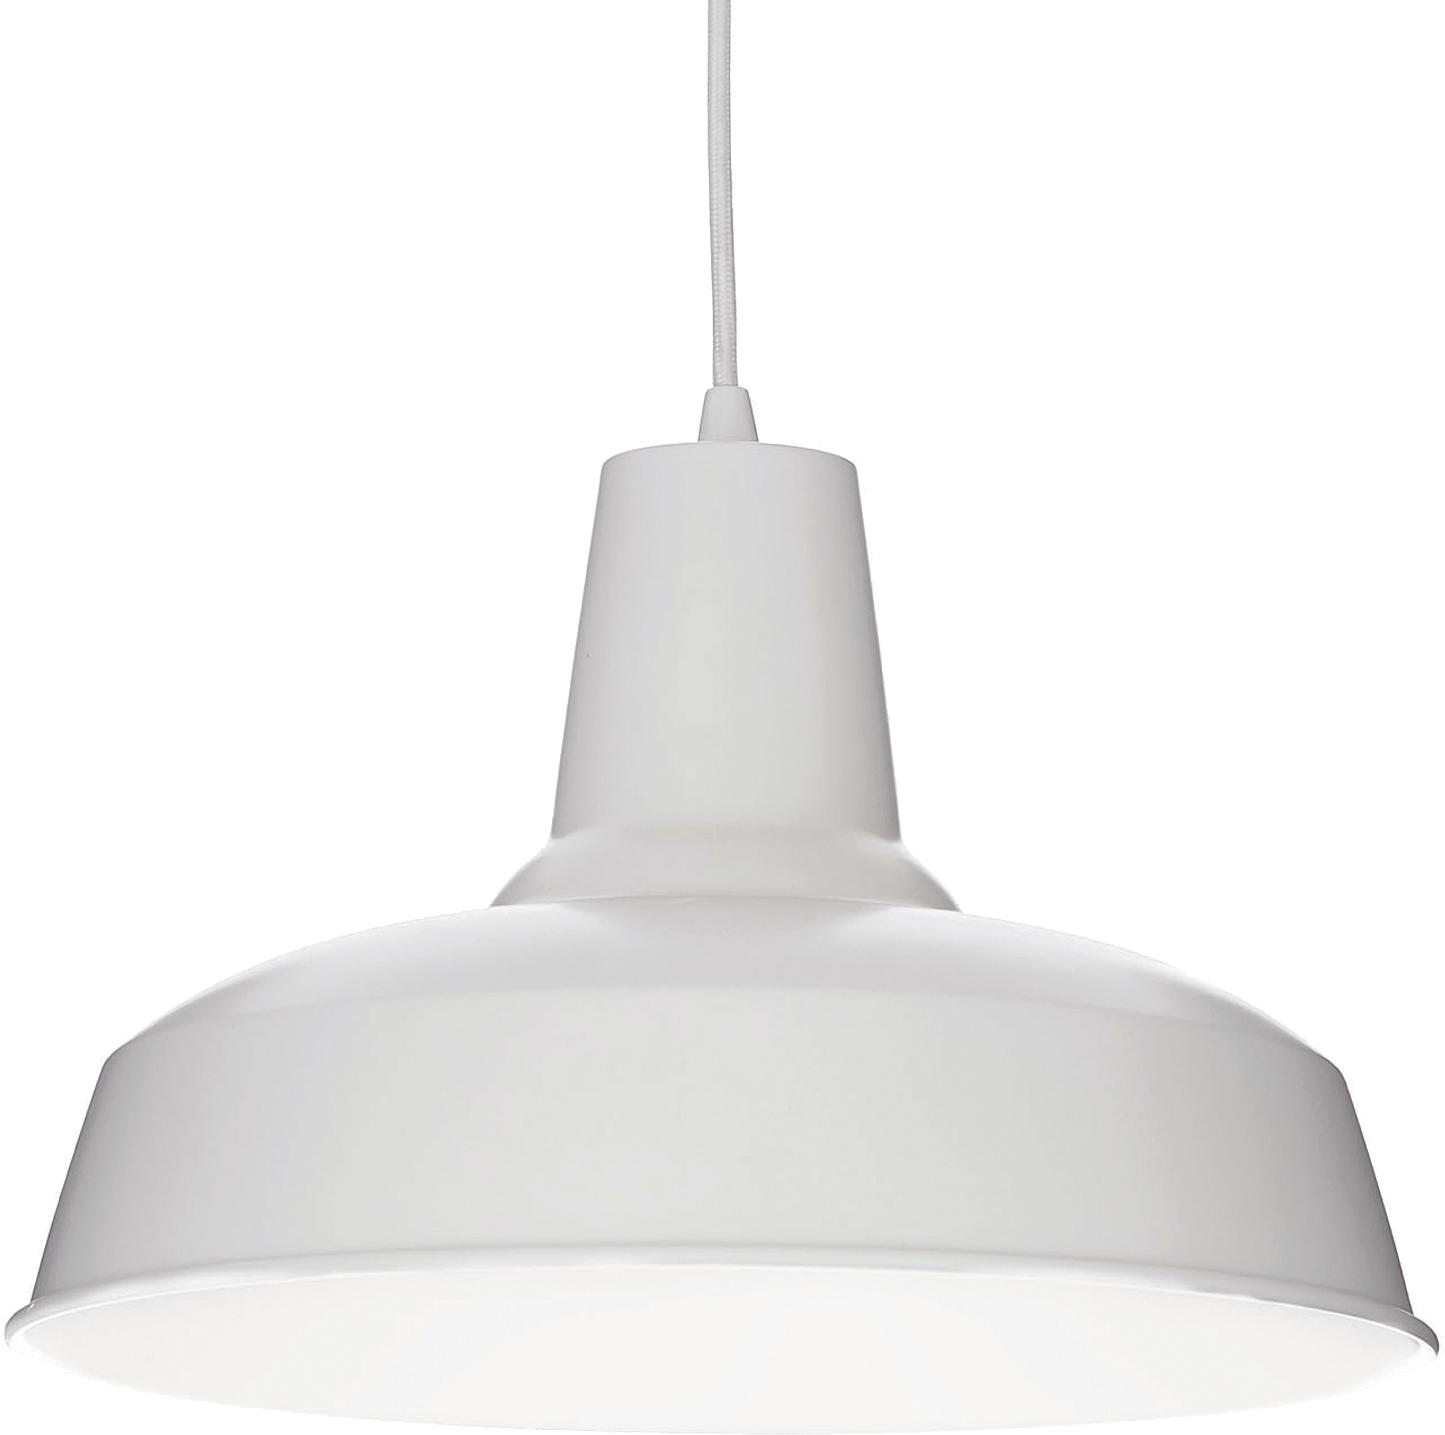 Ideal lux LED moby sp1 bianco Pendelleuchten 5W 102047